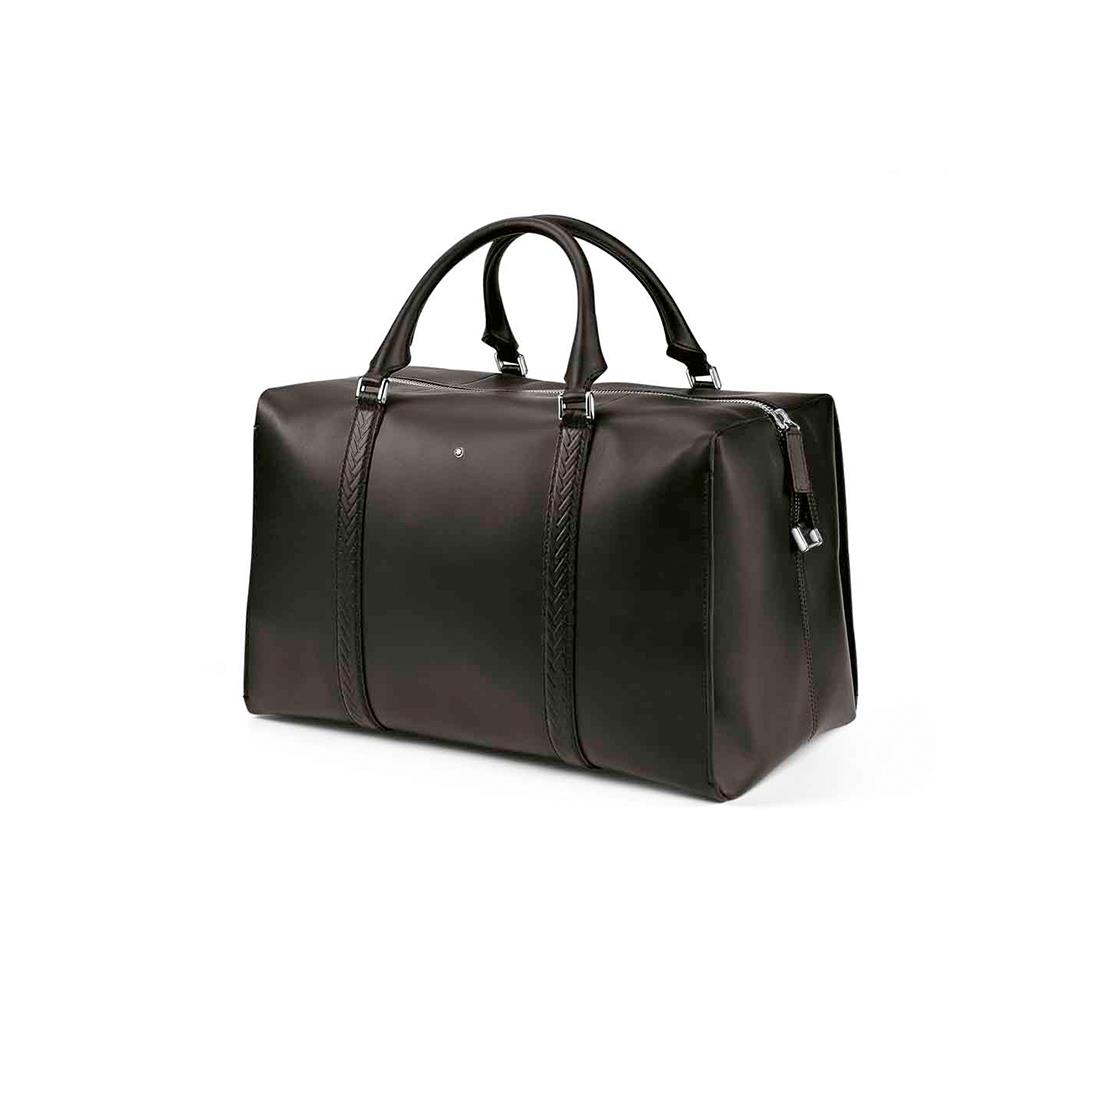 MONTBLANC FOR BMW DUFFLE BAG